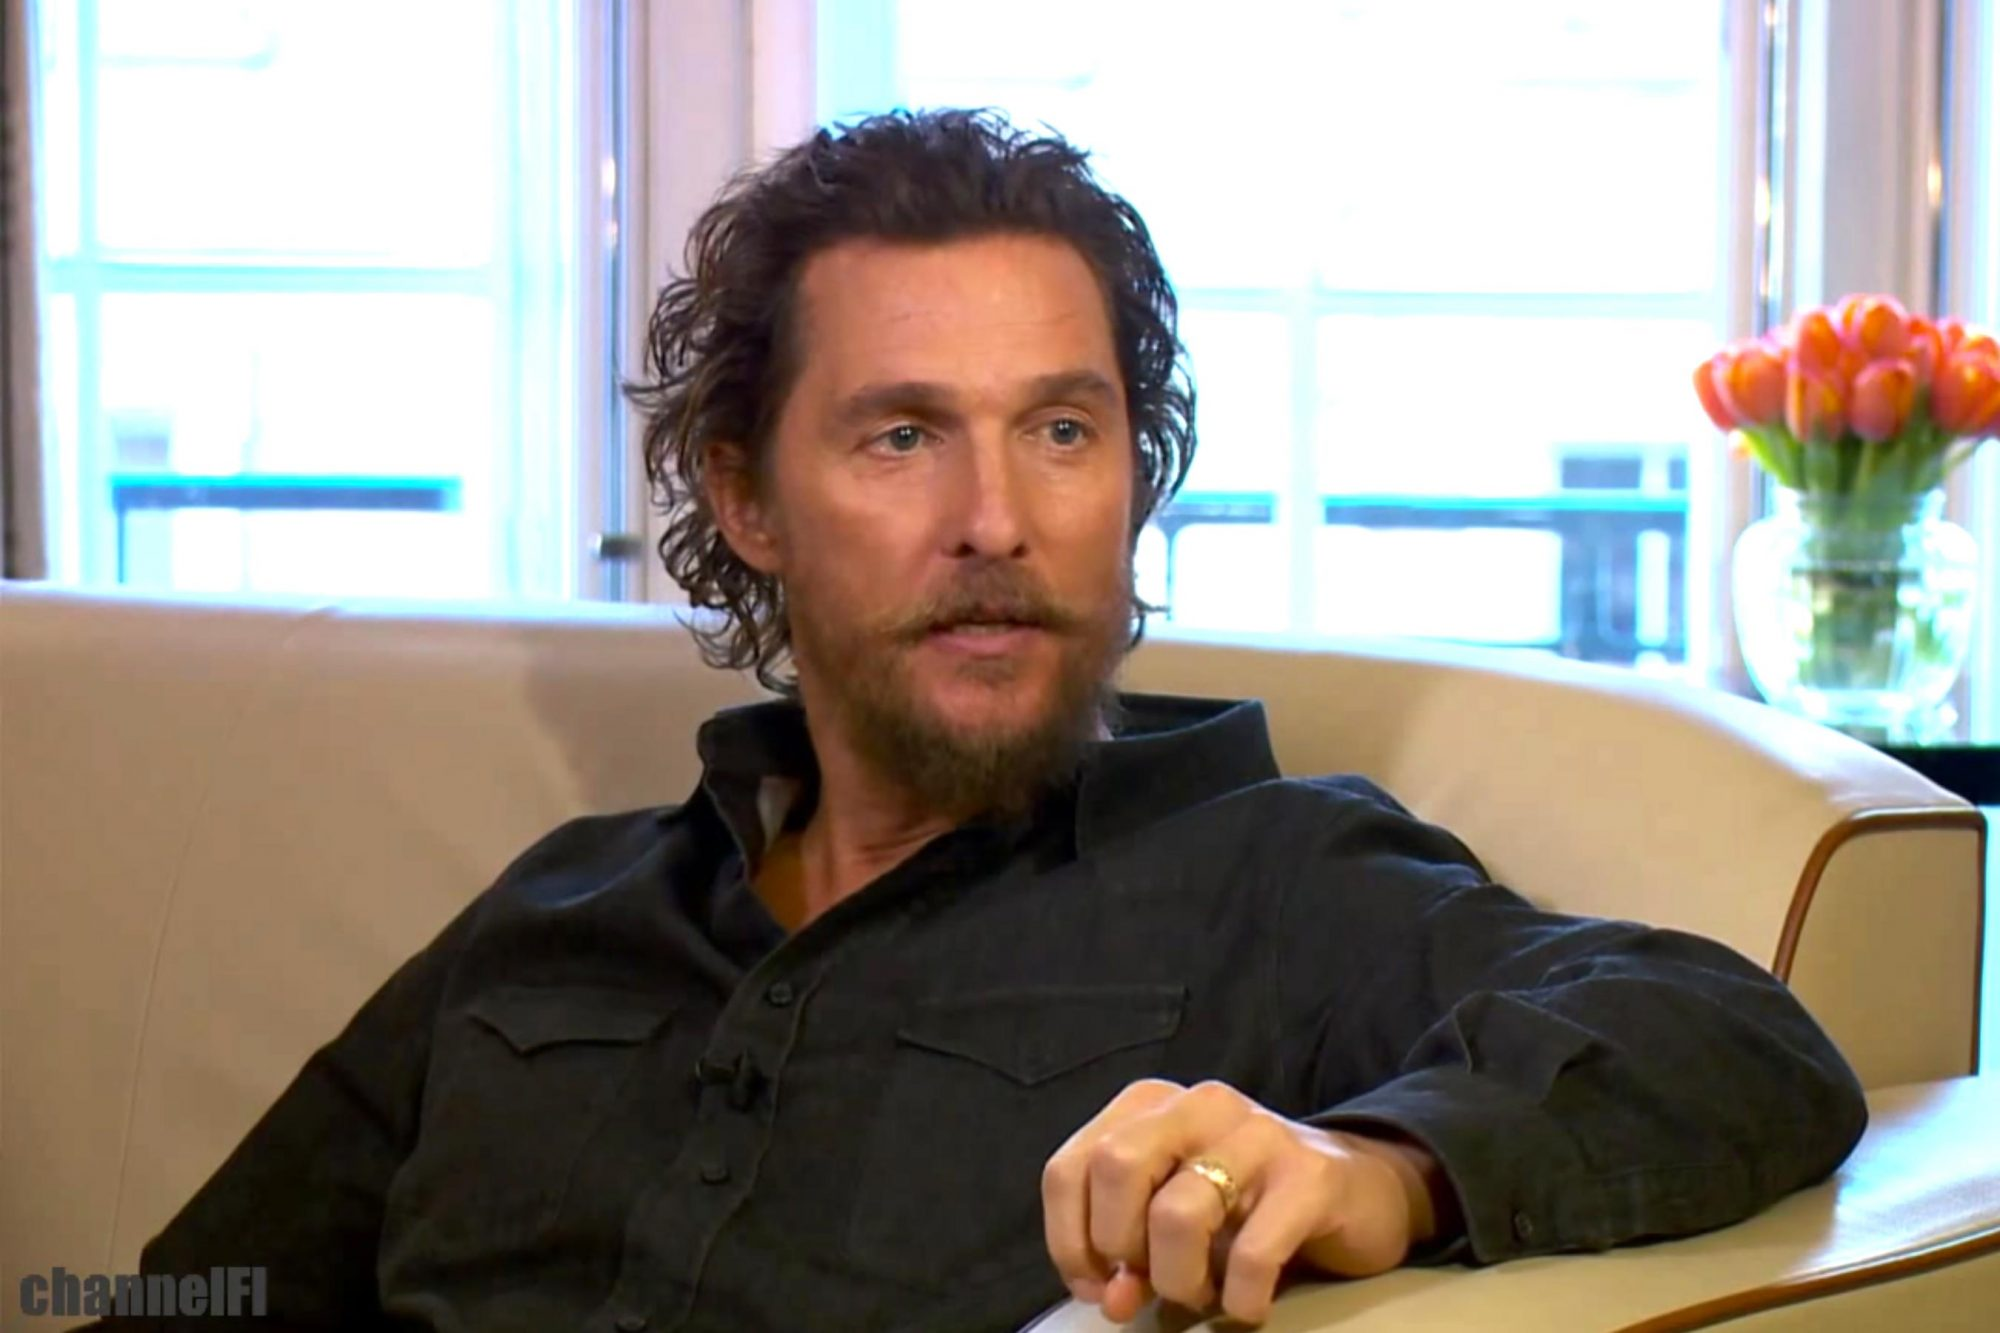 Matthew McConaughey on Donald Trump (screen grab)ChannelFI CR: ChannelFI